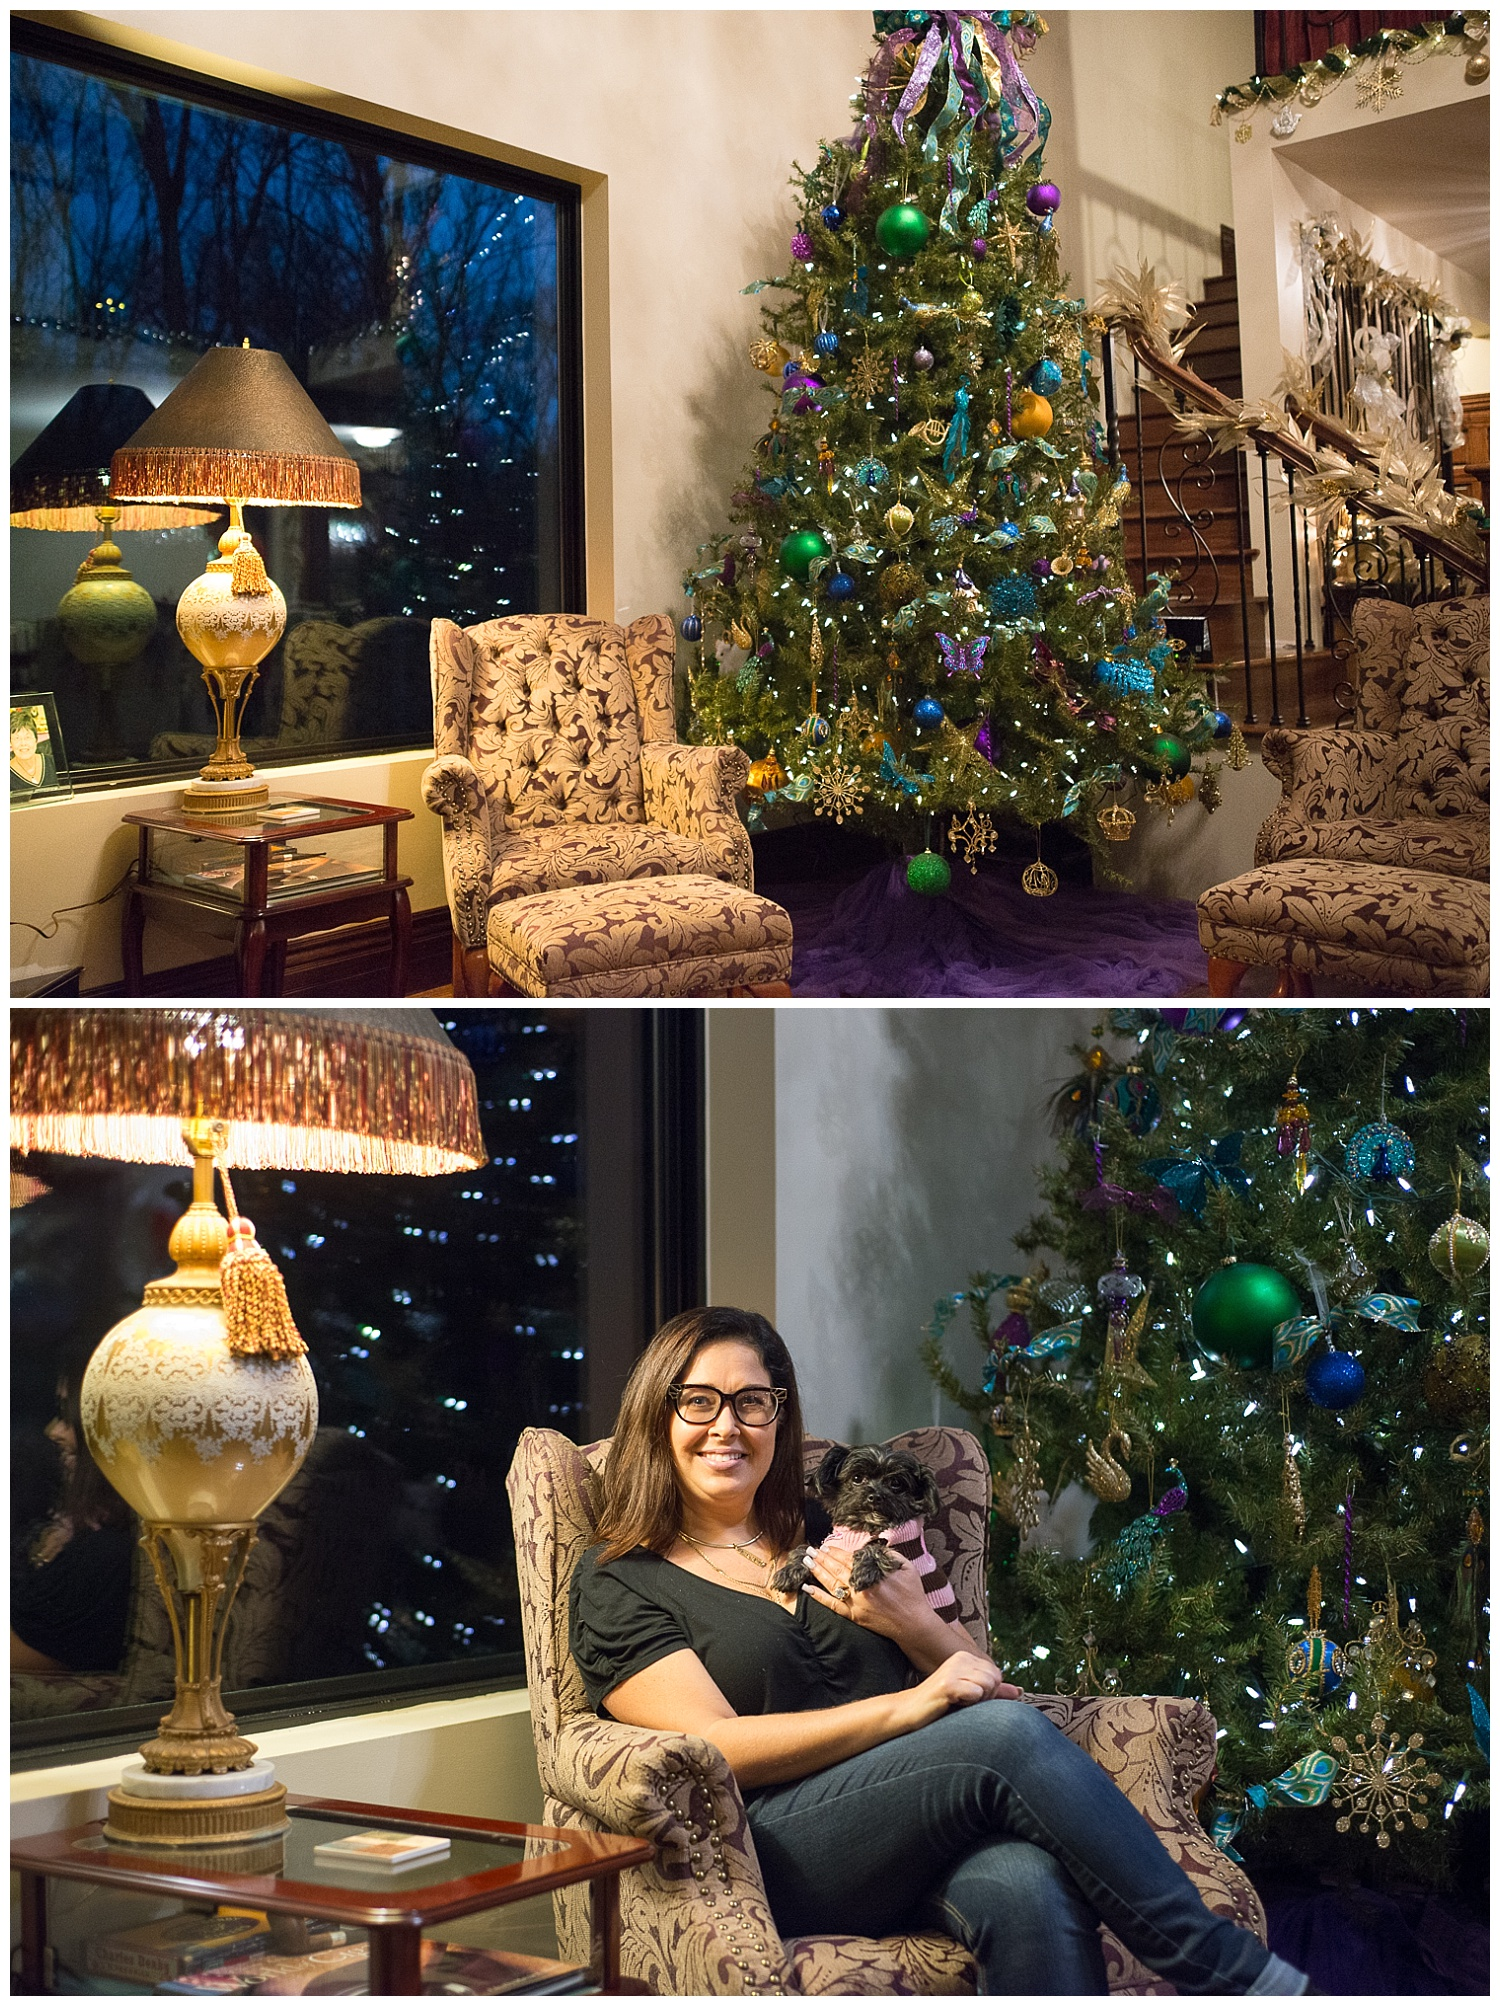 Filling the 12' tree with meaningful ornaments wasn't a difficult task. Chandra (pictured) has been collecting them for the past 20 years and being a hairdresser she has received many as gifts from clients. And let us not overlook the vintage lamp sitting next to her. Gorg.